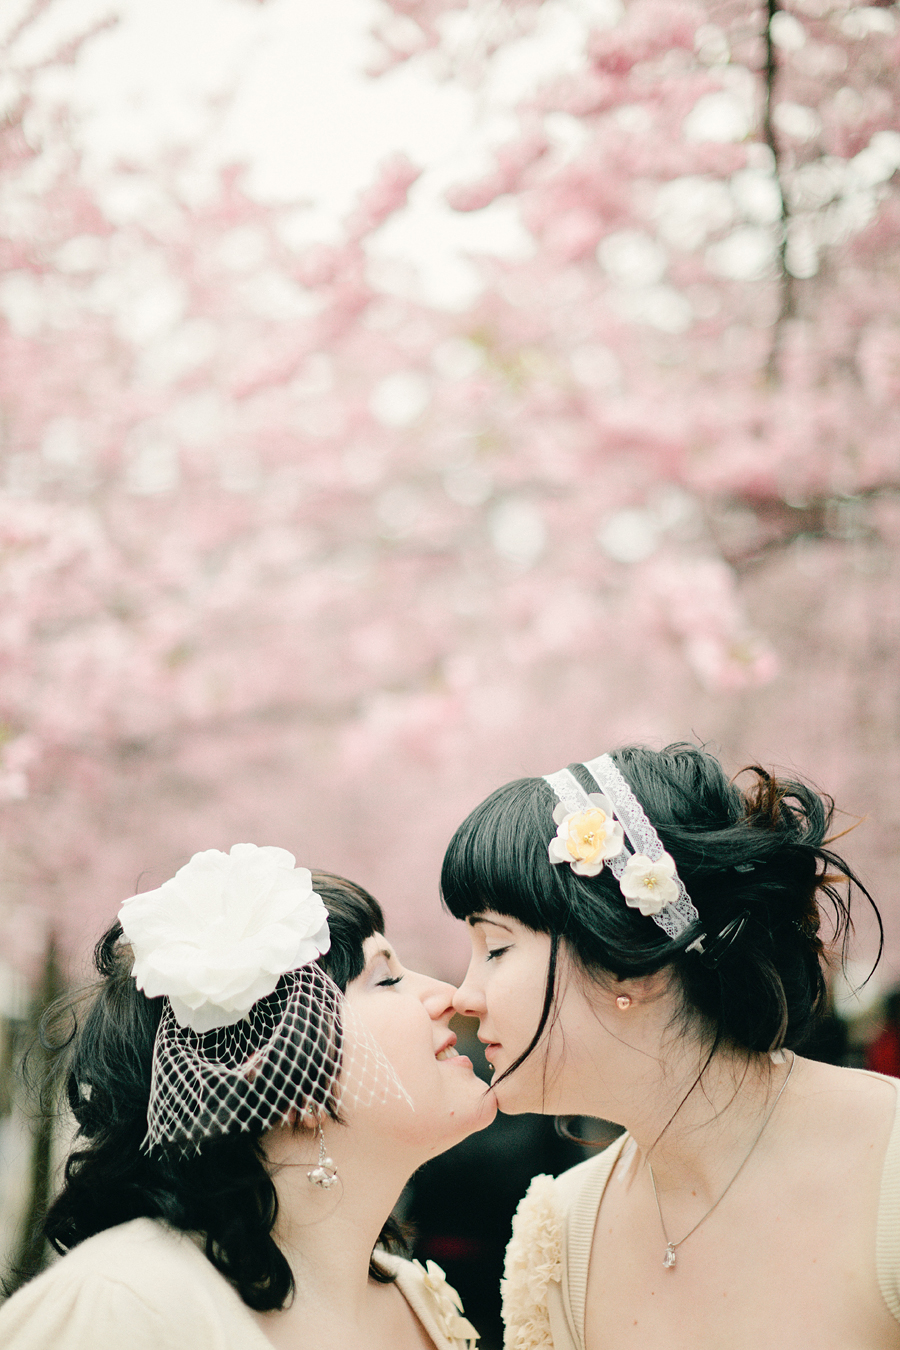 sweet-pink-themed-lesbian-wedding-2-brides-photography-23